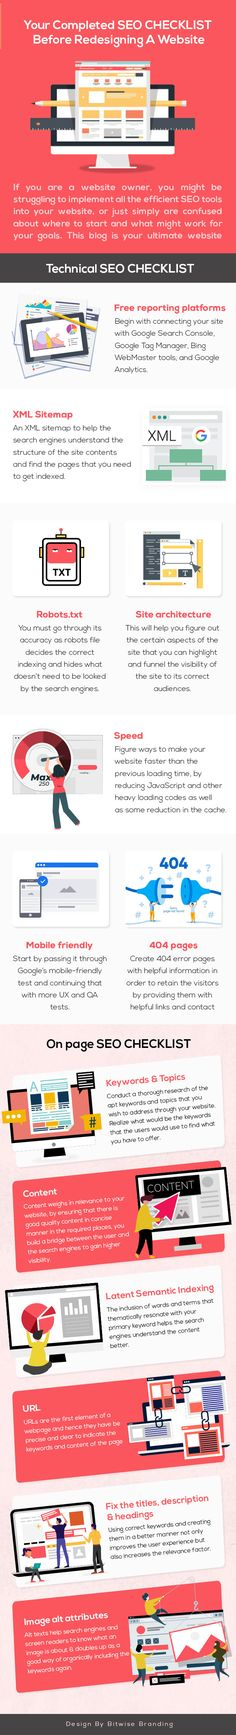 Complete SEO Checklist Before Redesigning a Website [Infographic] Online Marketing, Digital Marketing, Media Marketing, How To Become Smarter, Seo Guide, Seo For Beginners, Marketing Information, Business Website, Love You